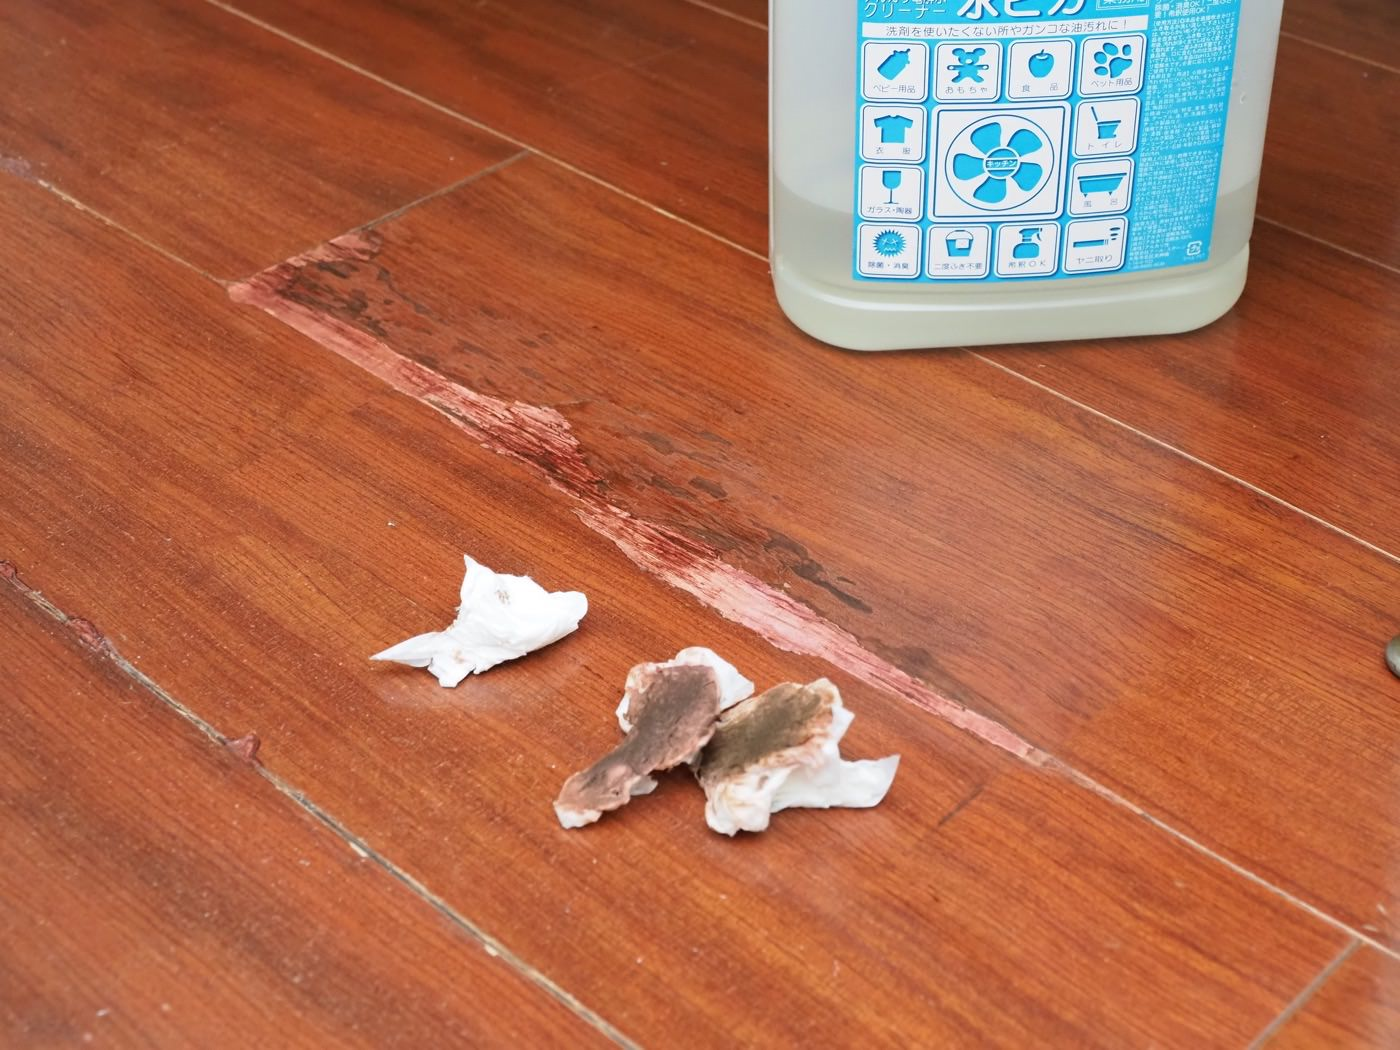 Repaired badly cracked flooring with diy 00016